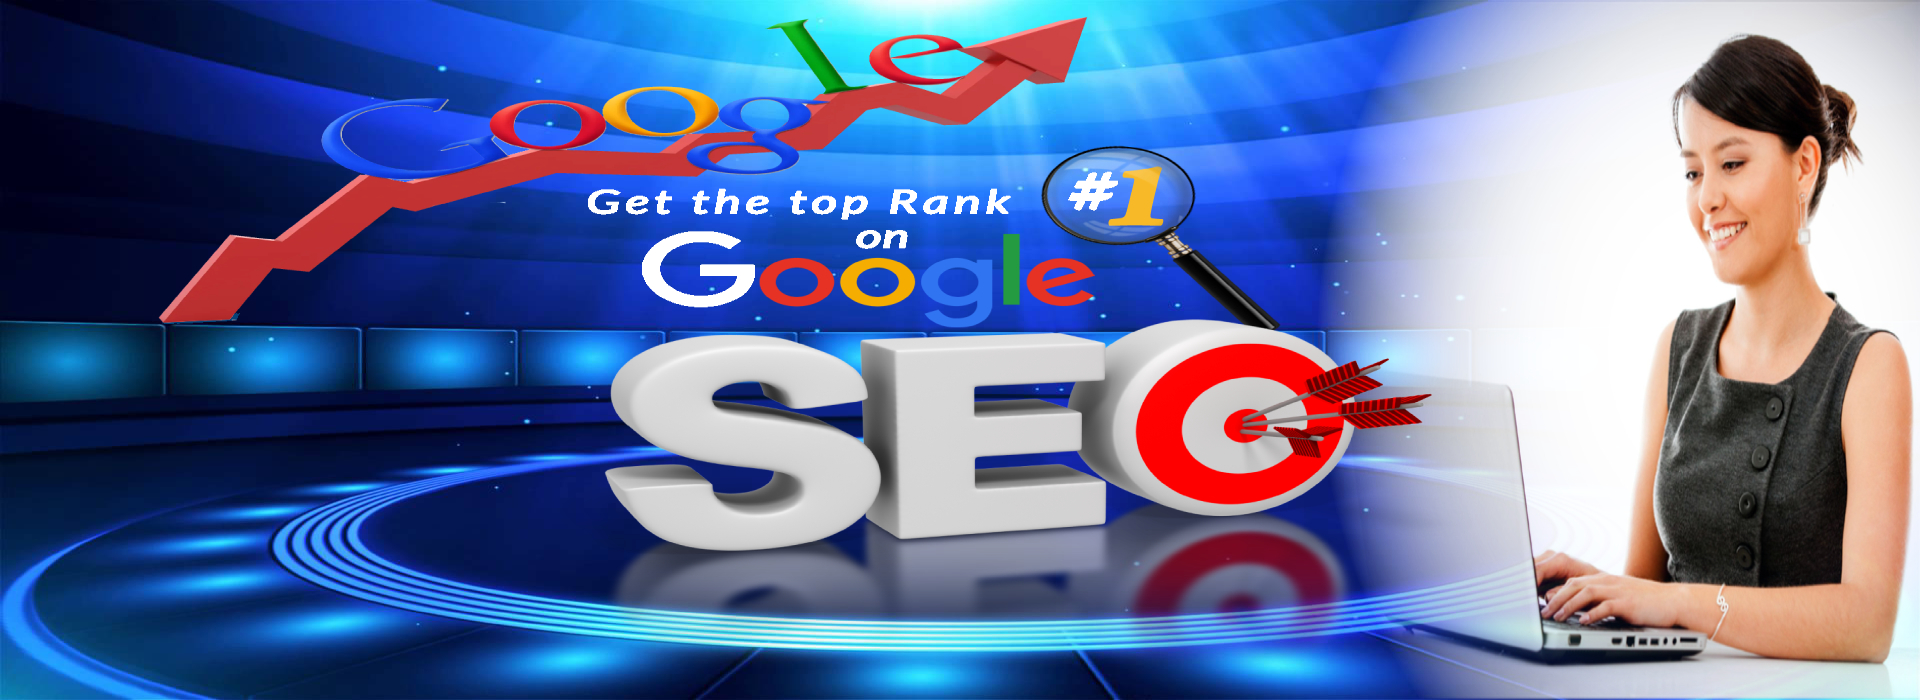 SEO Services company in Delhi, Noida, Lucknow, Best SEO Company India